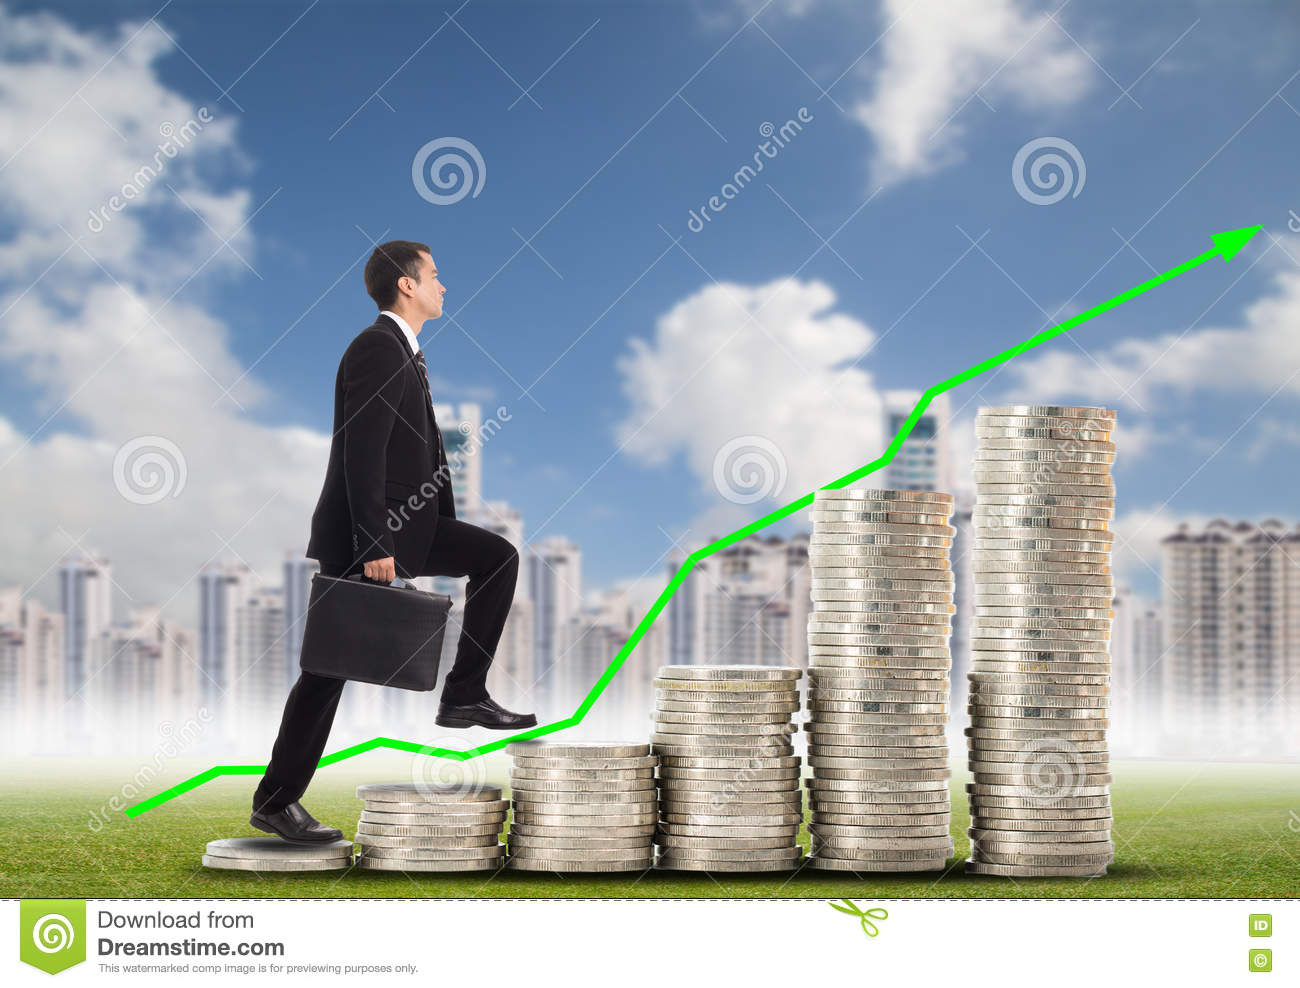 Business Step Business Step Up Stock Photo Image Of Risk Person 77613390